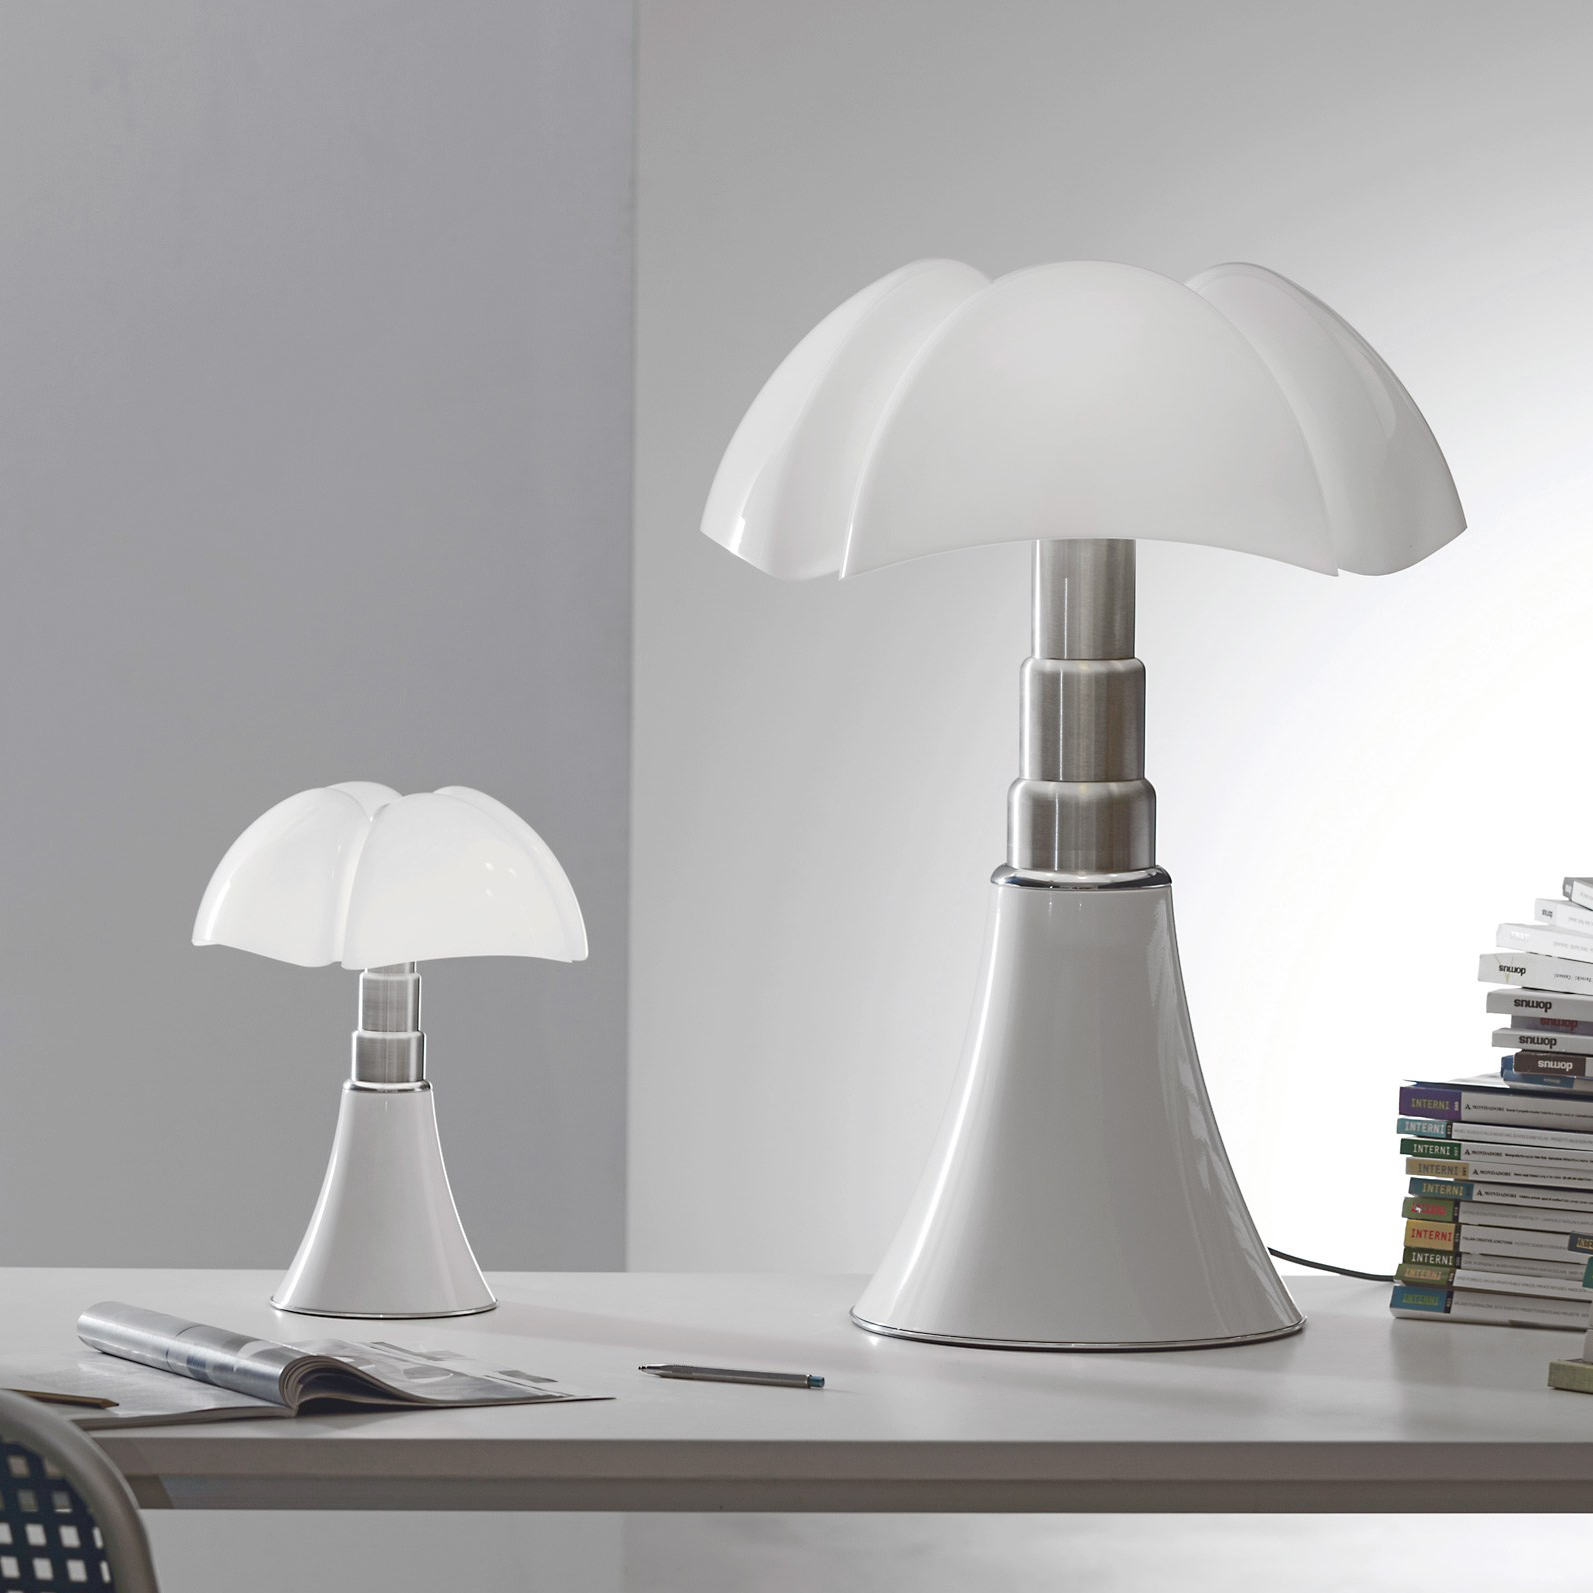 Lampe Pipistrella Table Lamp Pipistrello Led White H86cm Martinelli Luce